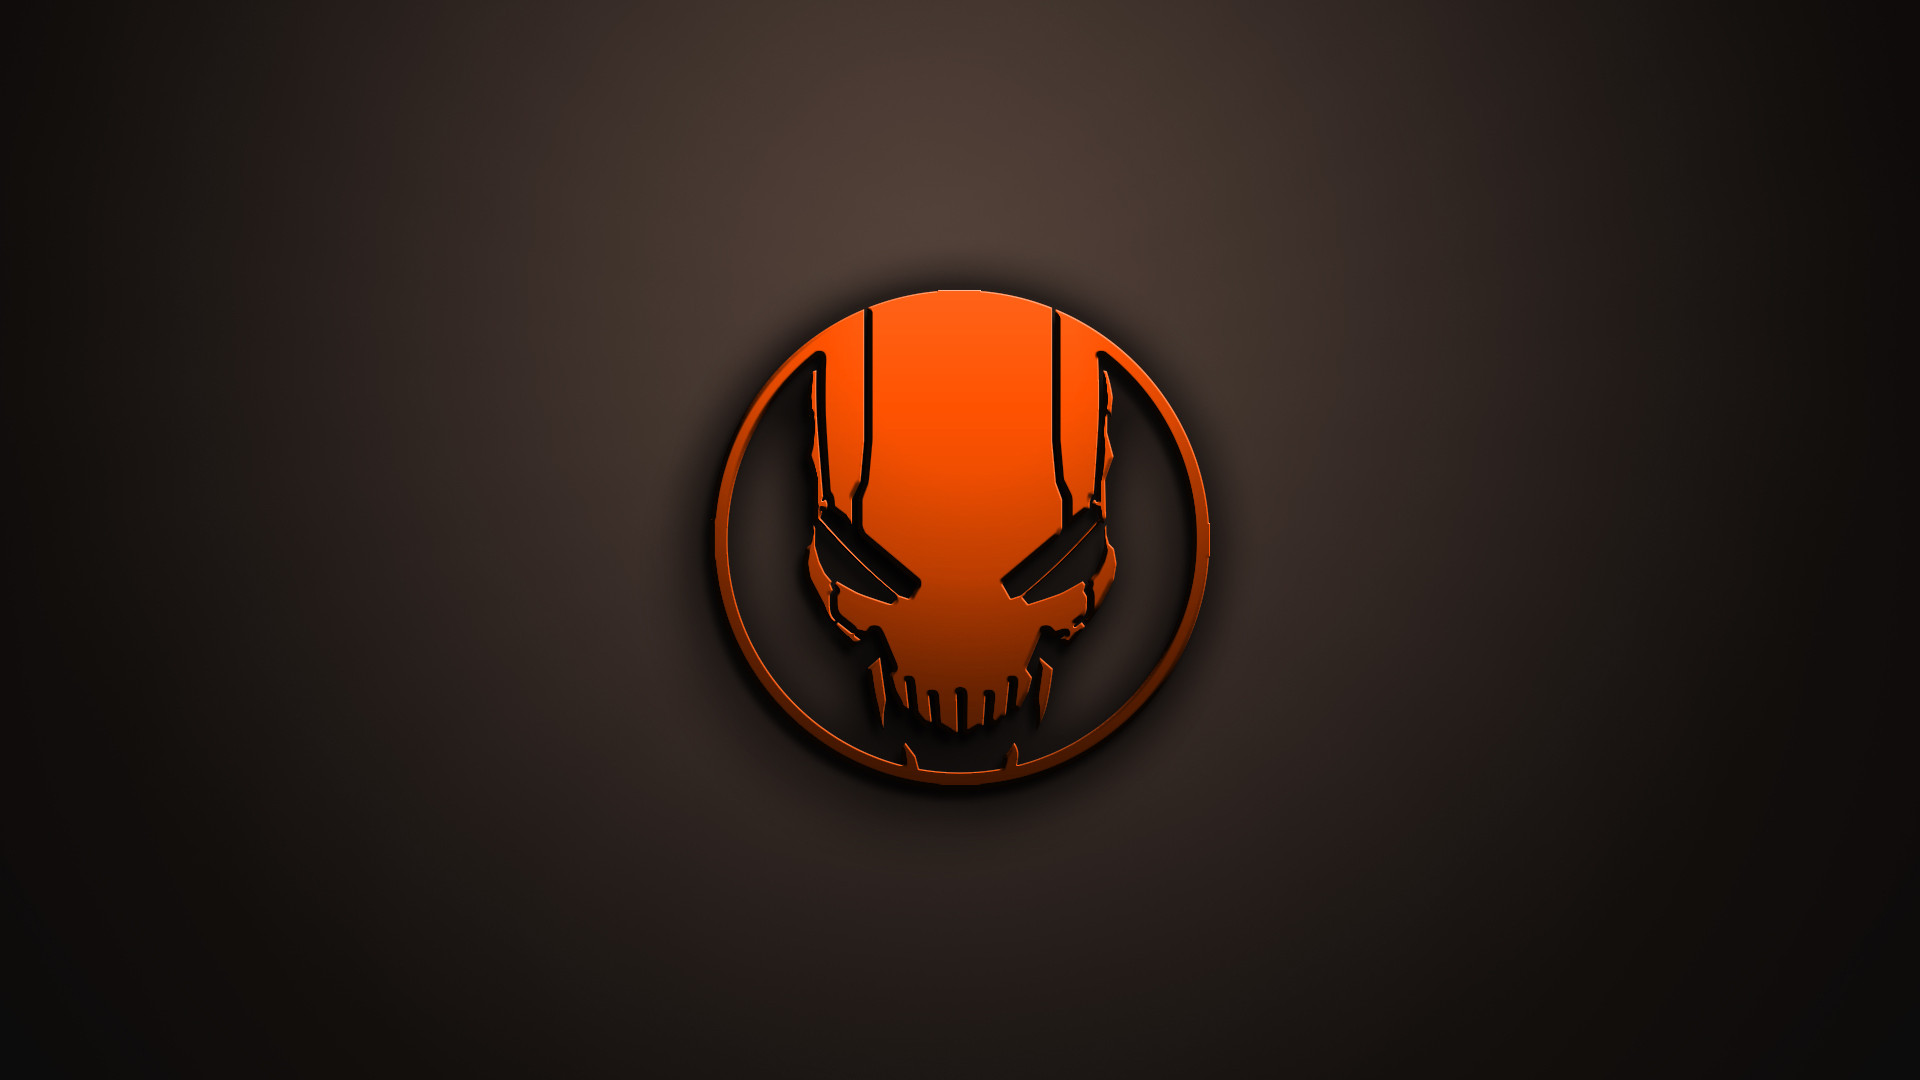 Collection of Cool Gaming Wallpapers on HDWallpapers